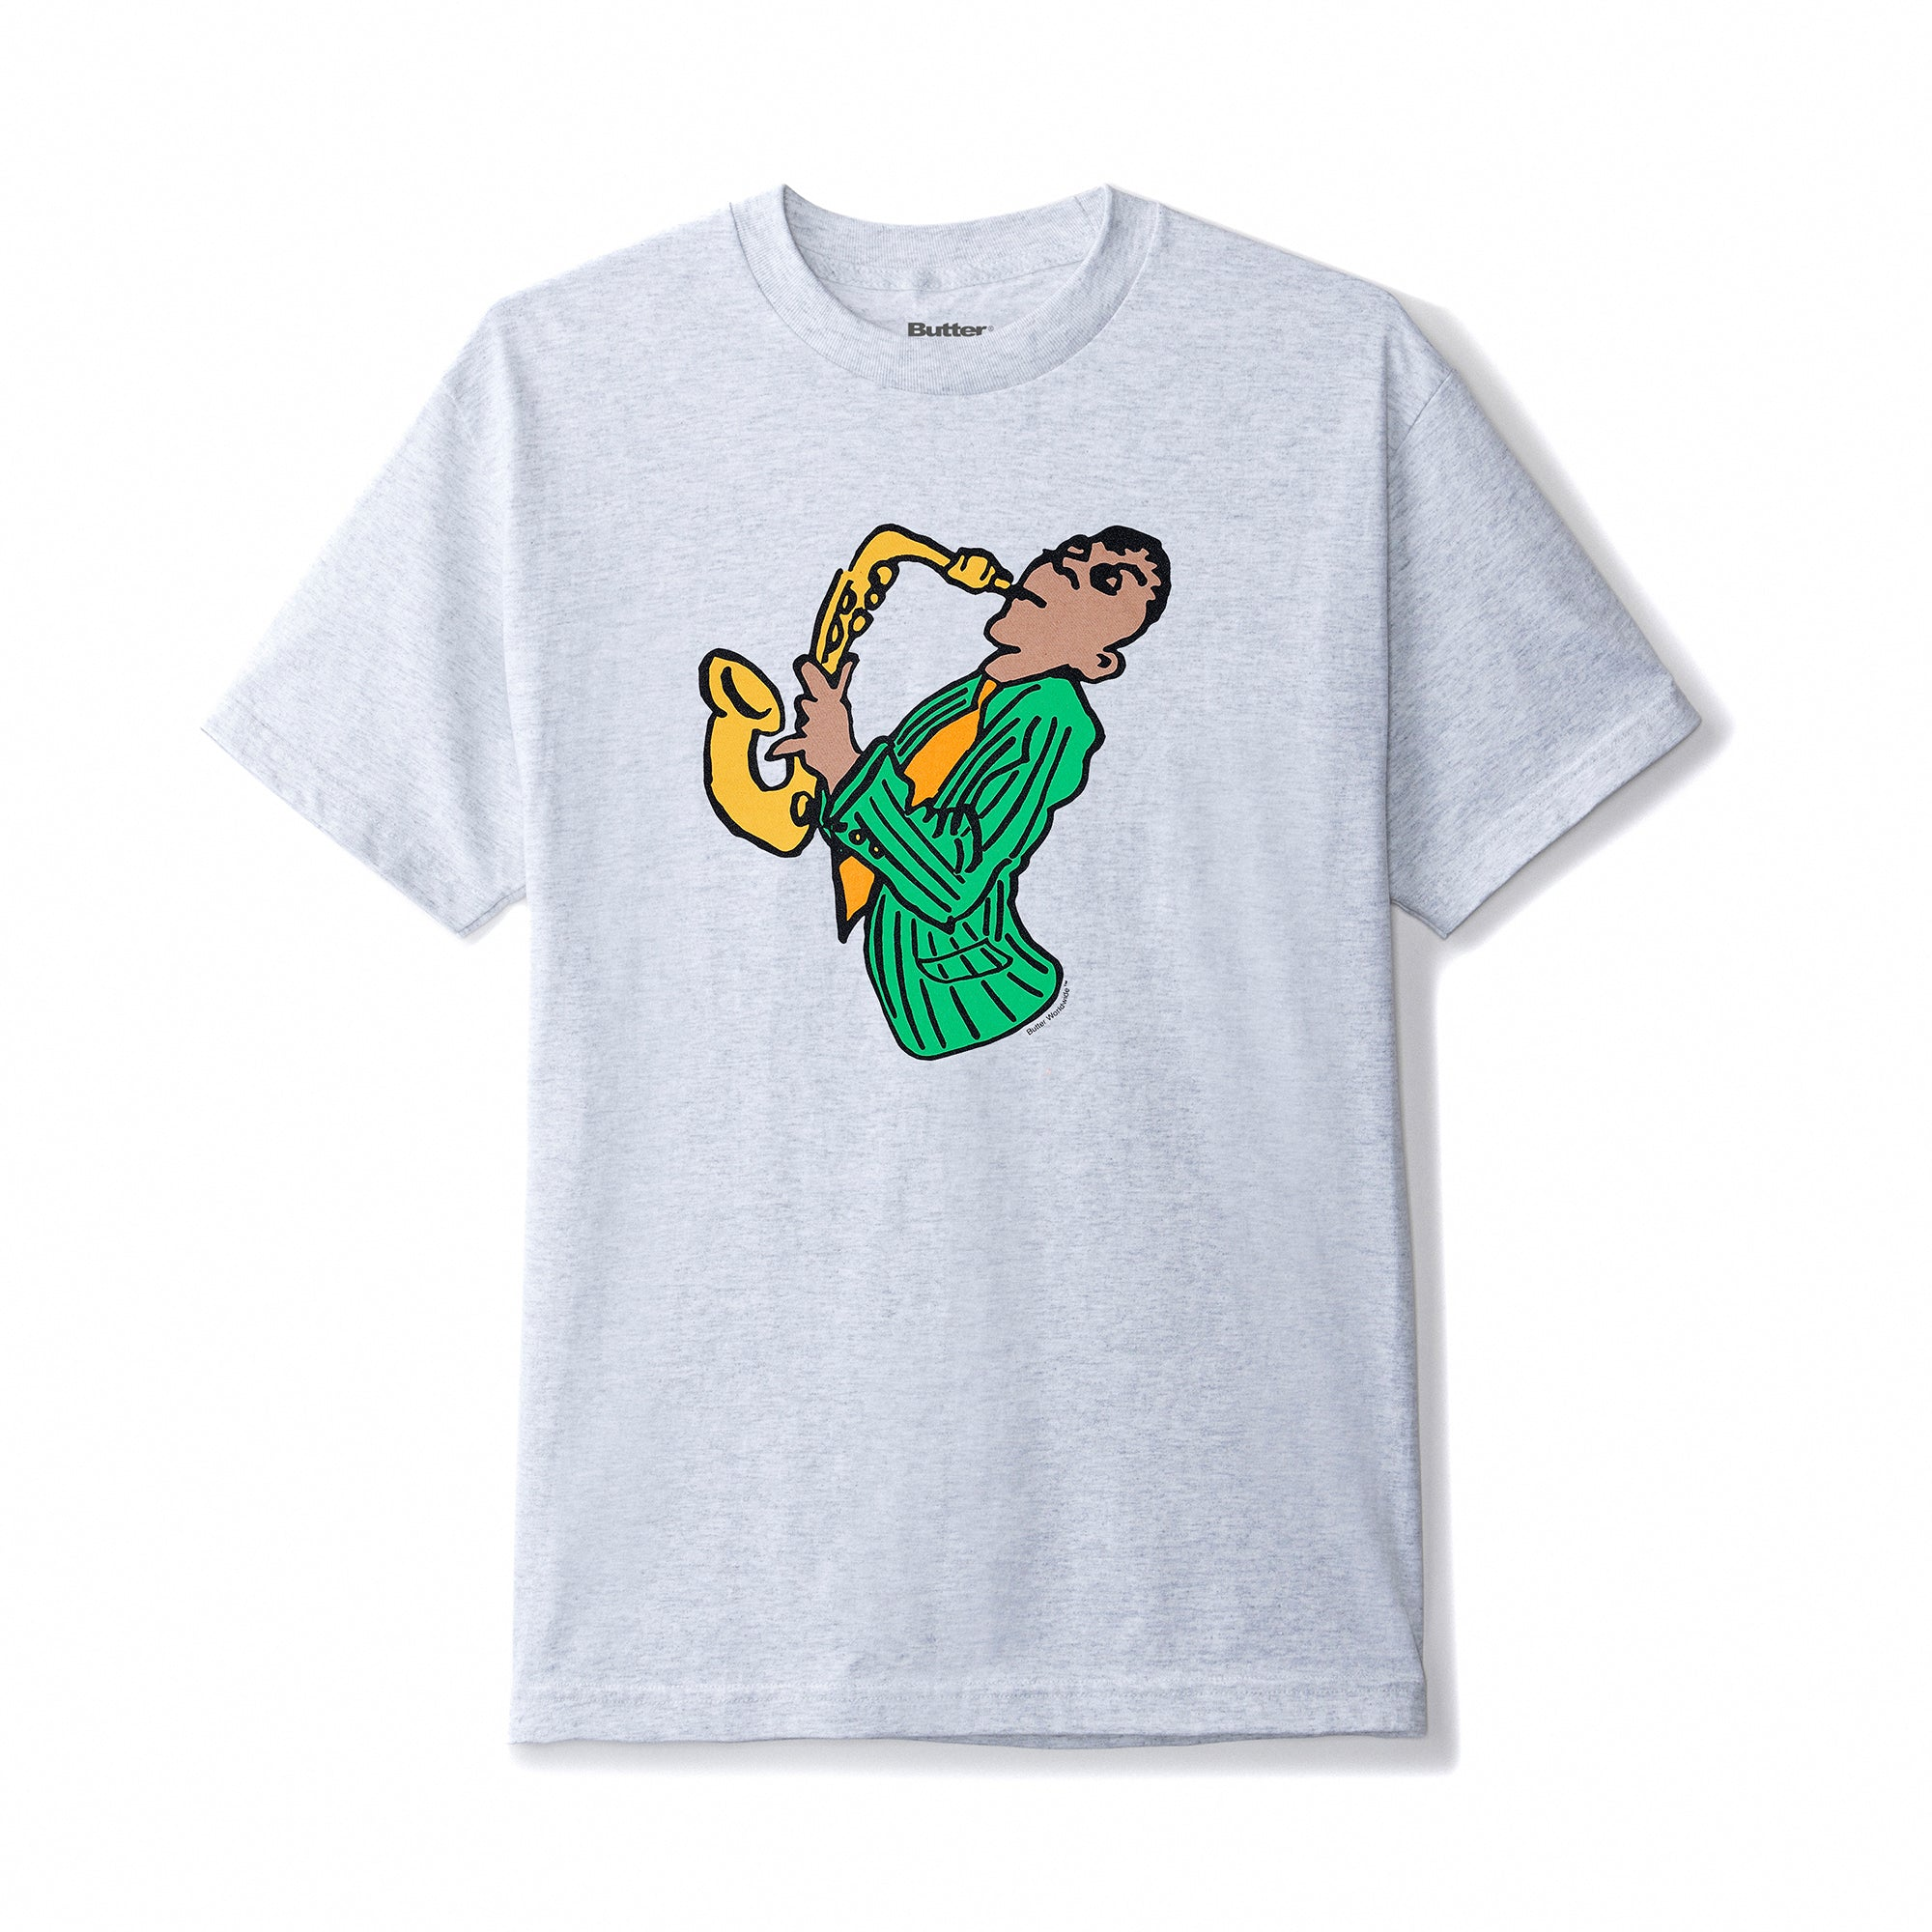 Butter Goods Sax Tee Product Photo #1